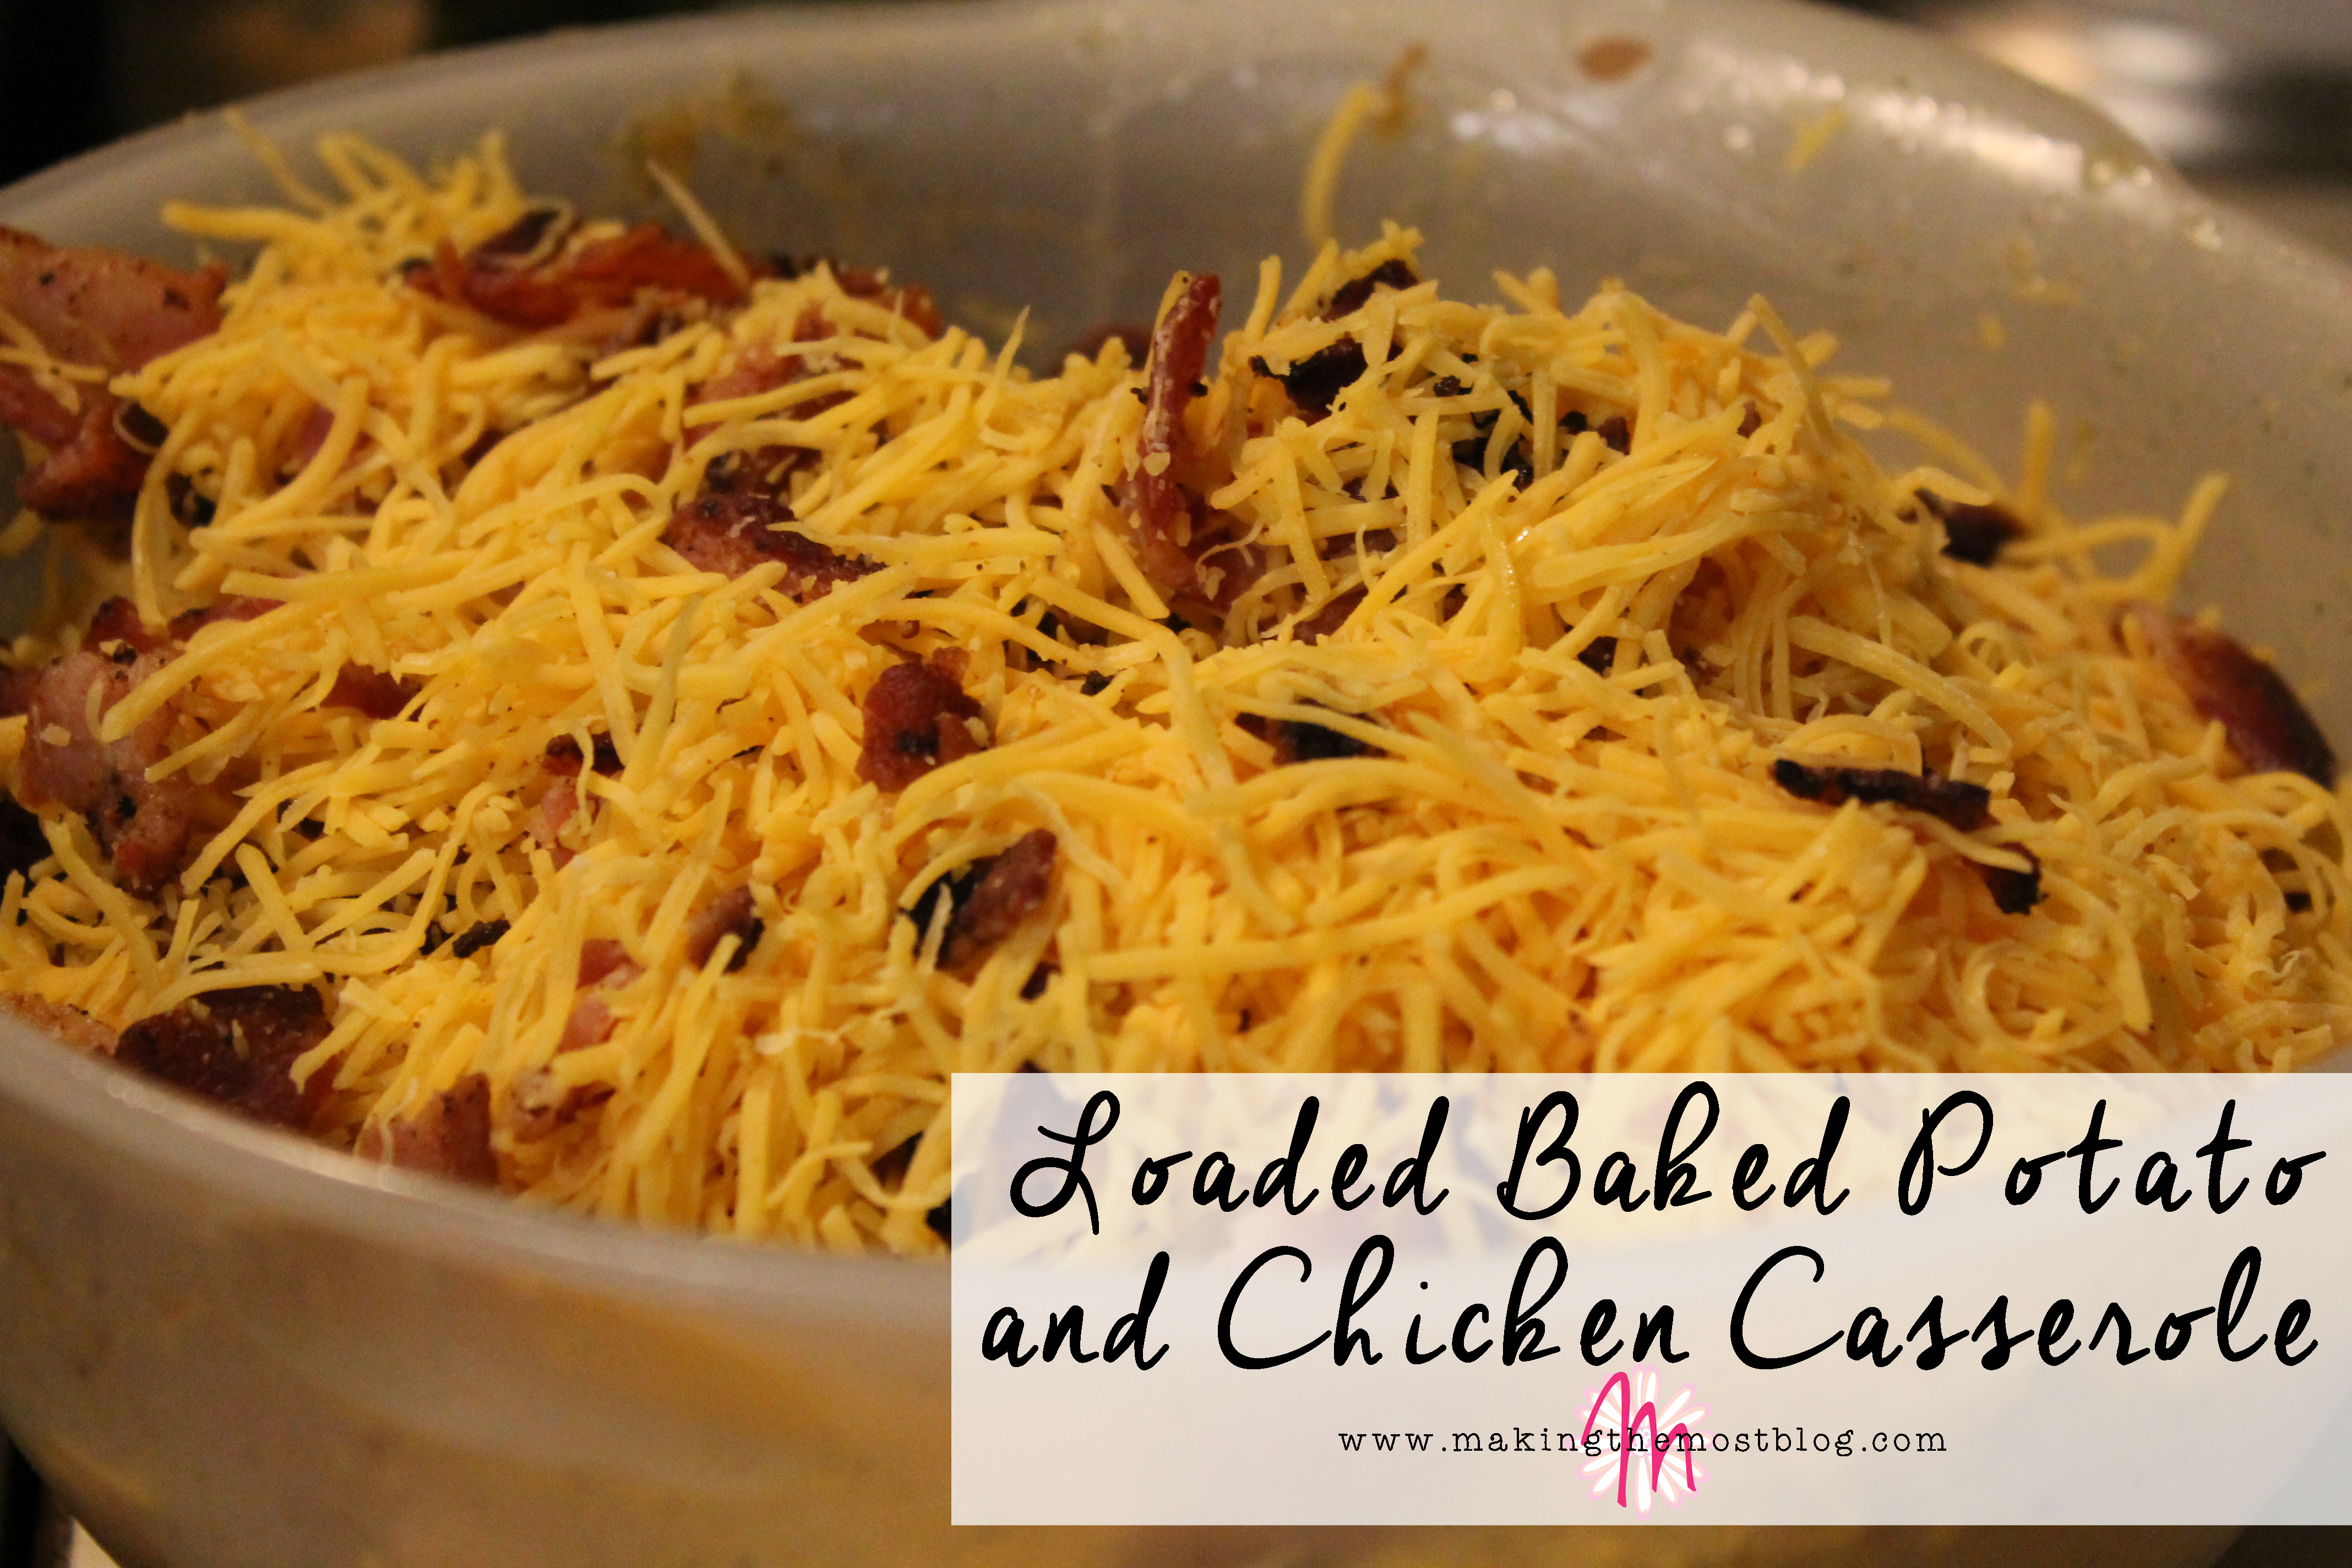 Loaded Baked Potato and Chicken Casserole | Making the Most Blog